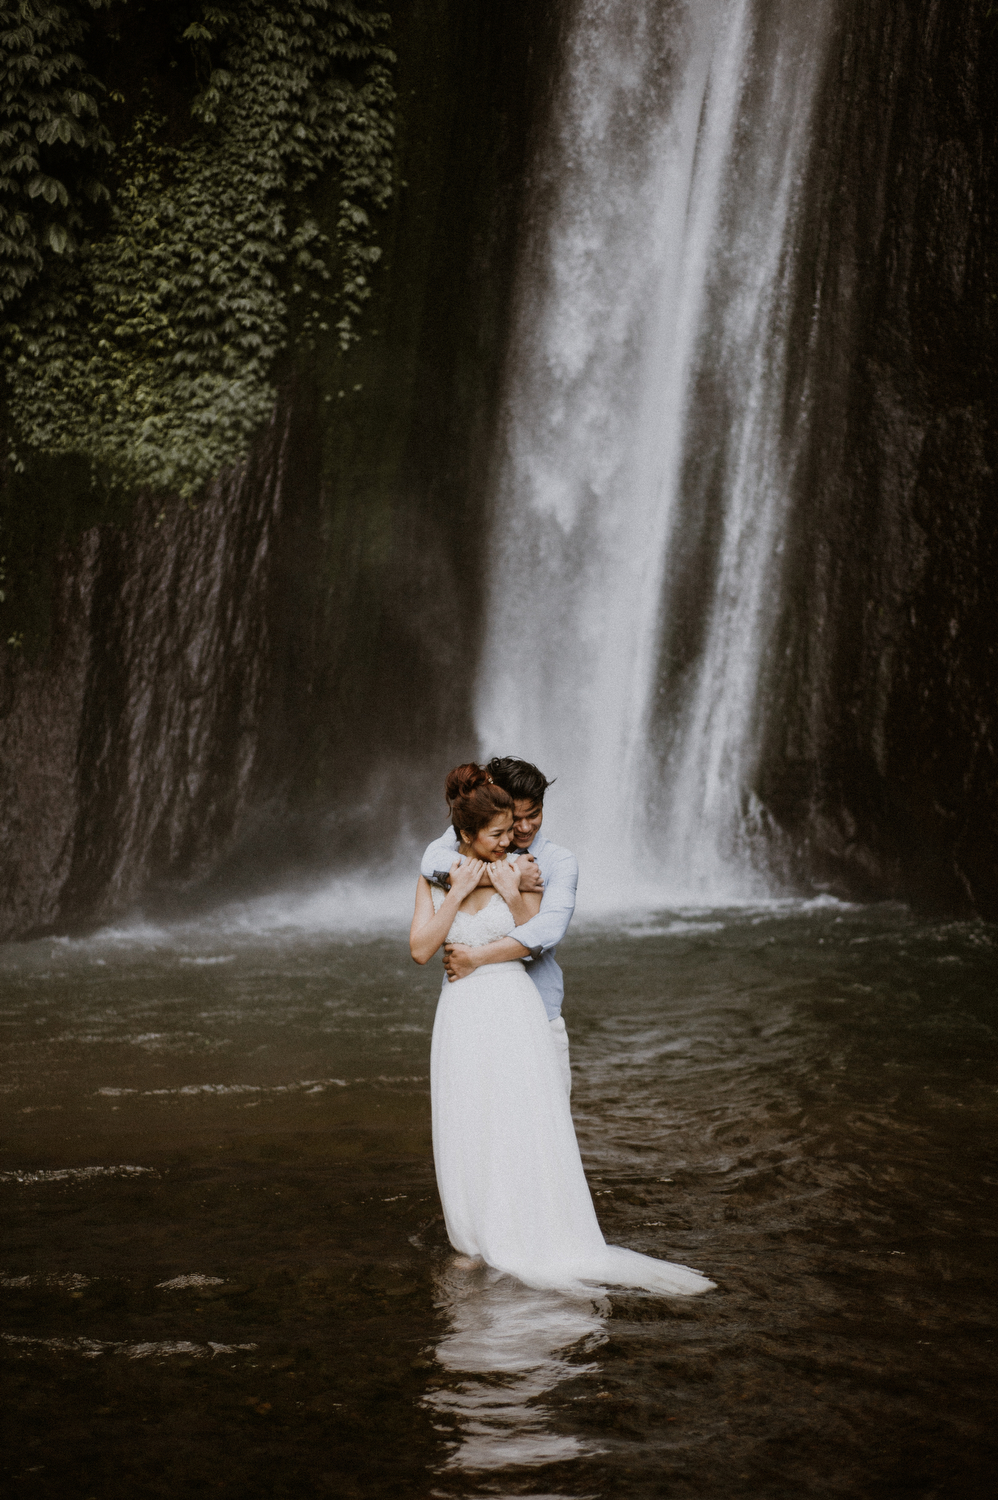 preweddinginbali-bali-batur-ubud-diktatphotography-engagemnet-baliweddingphotographer-weddinginbali-36